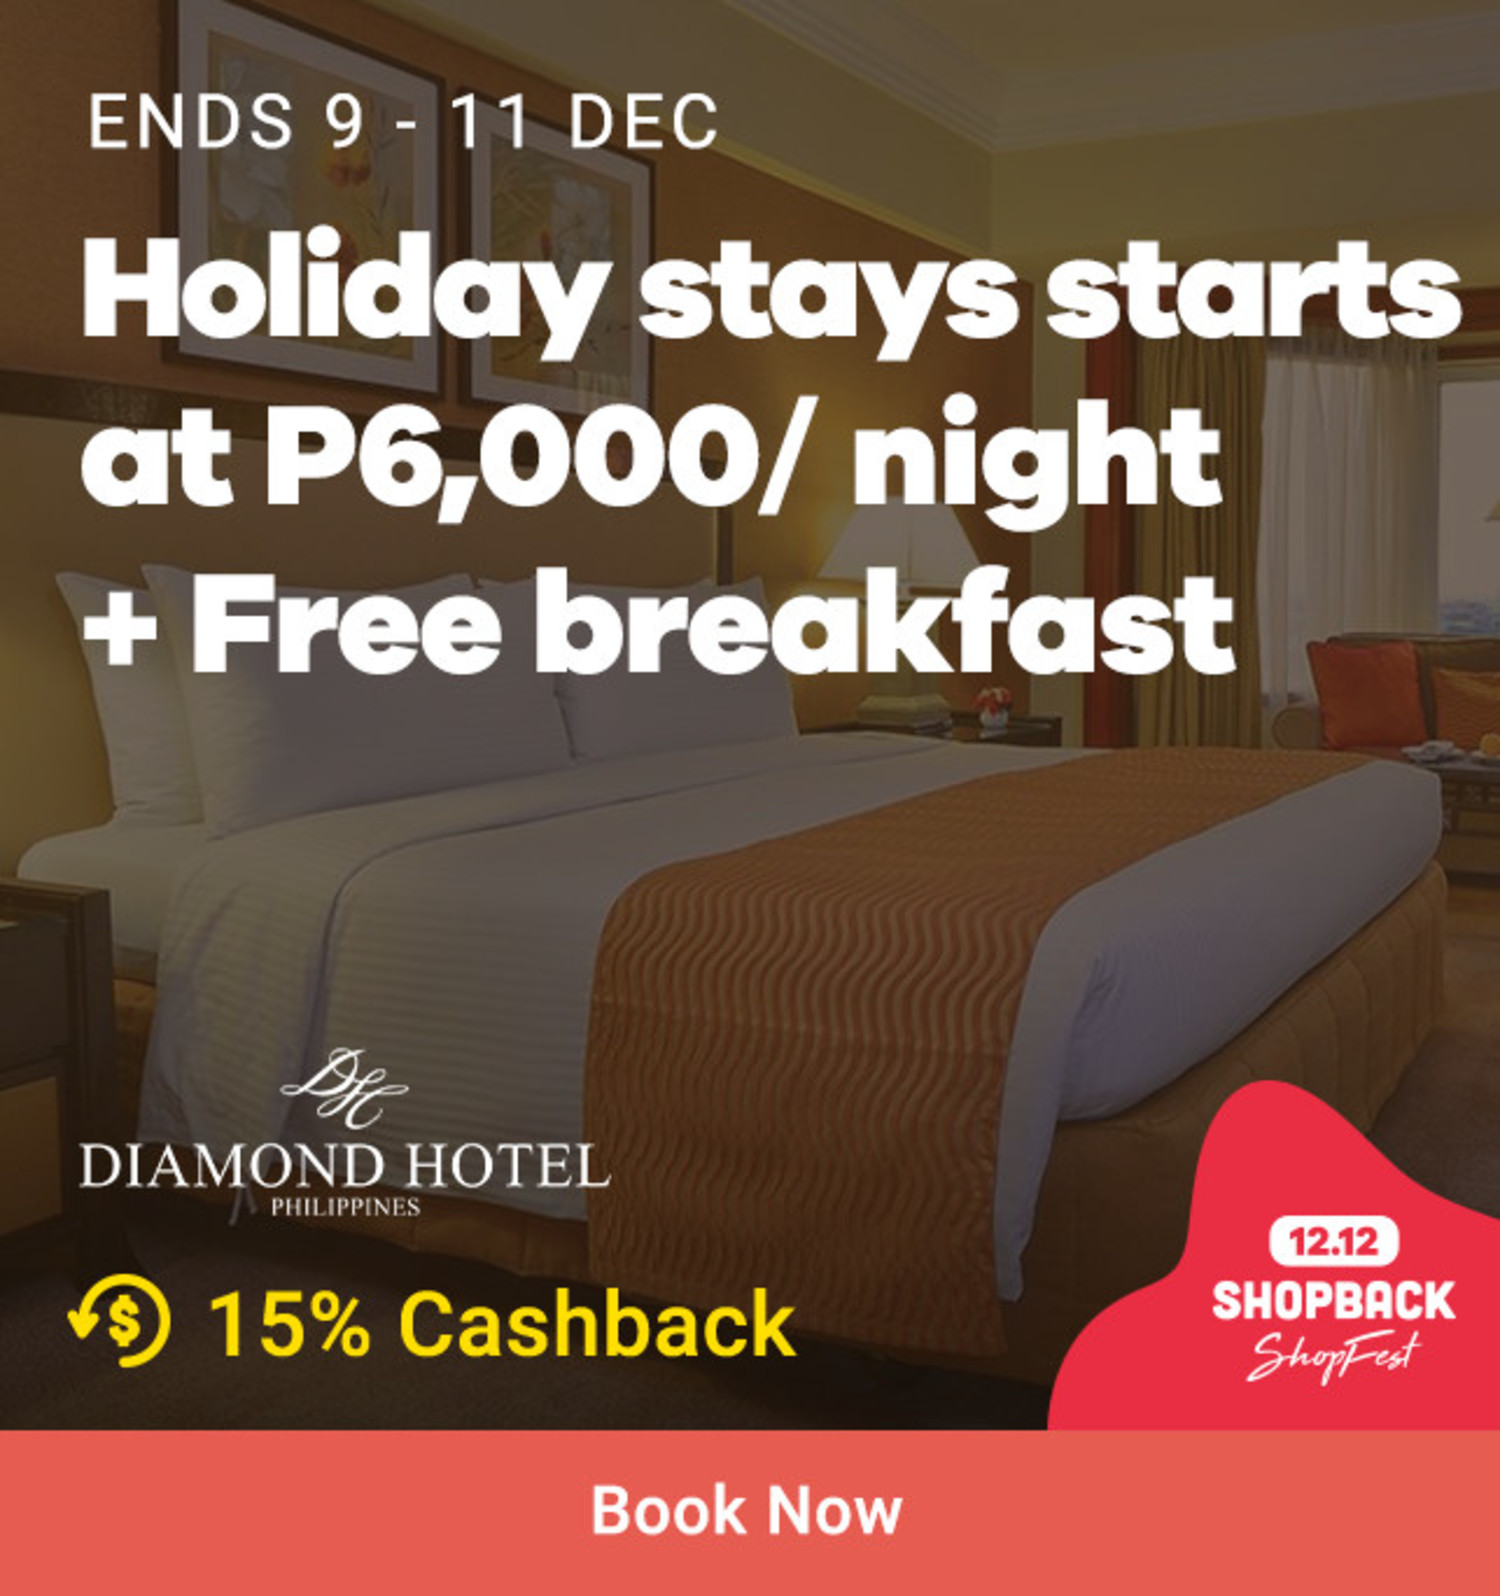 Diamond Hotel: Holiday stays starts at P6,000